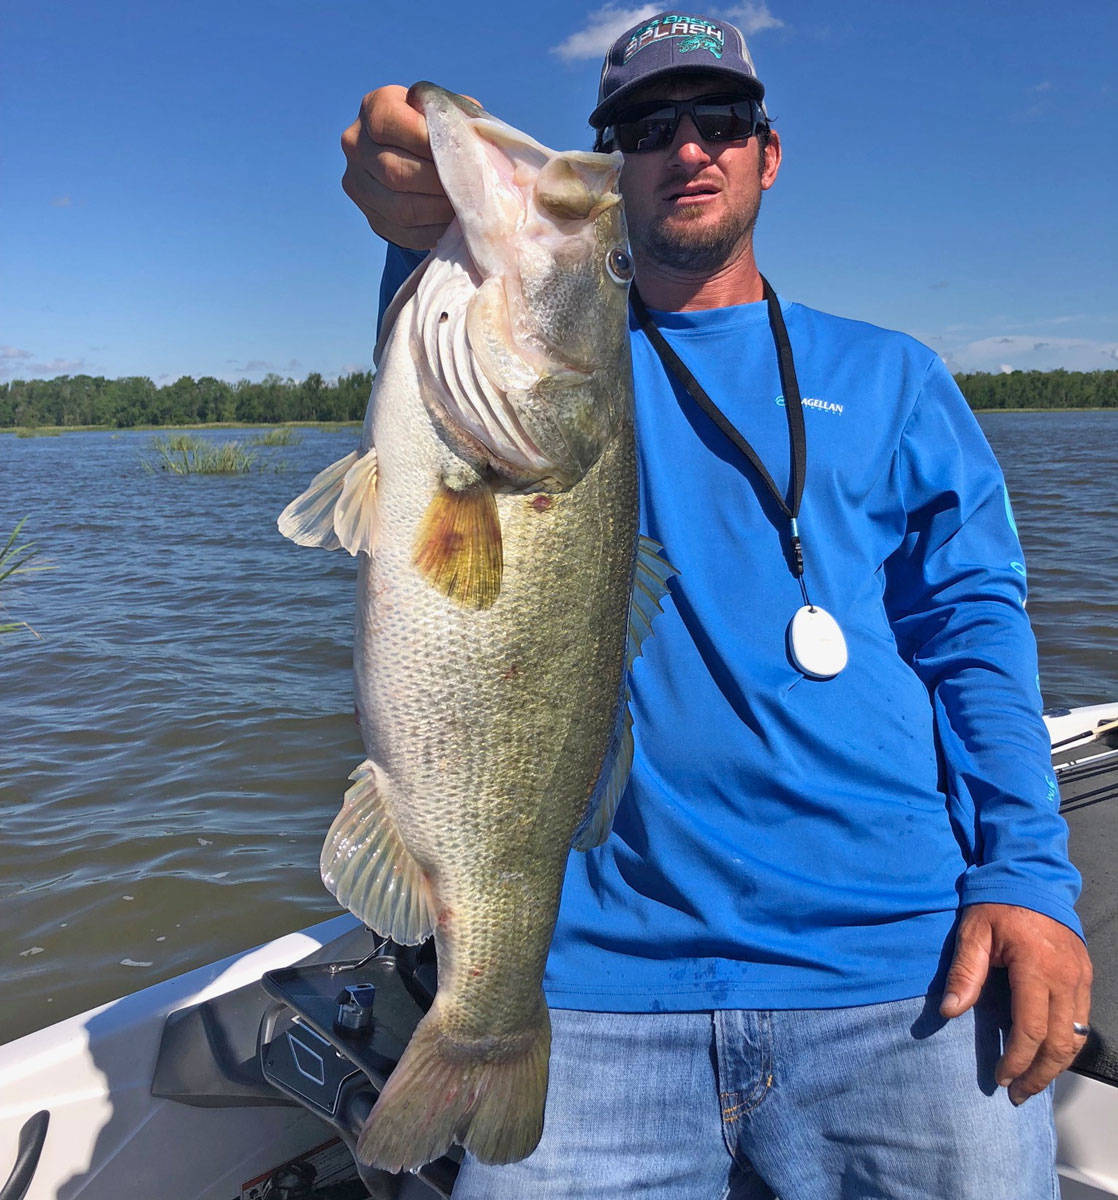 Branch's Travis Meche Sr. holds up an 8.82-pound bass he caught May 2 in Sandy Cove at Lake Fausse Pointe. The 'hawg' bit on a crawfish-colored Strike King jig with a crawfish-colored Speed Craw around midday that Saturday. (Photo courtesy Travis Meche Sr.)